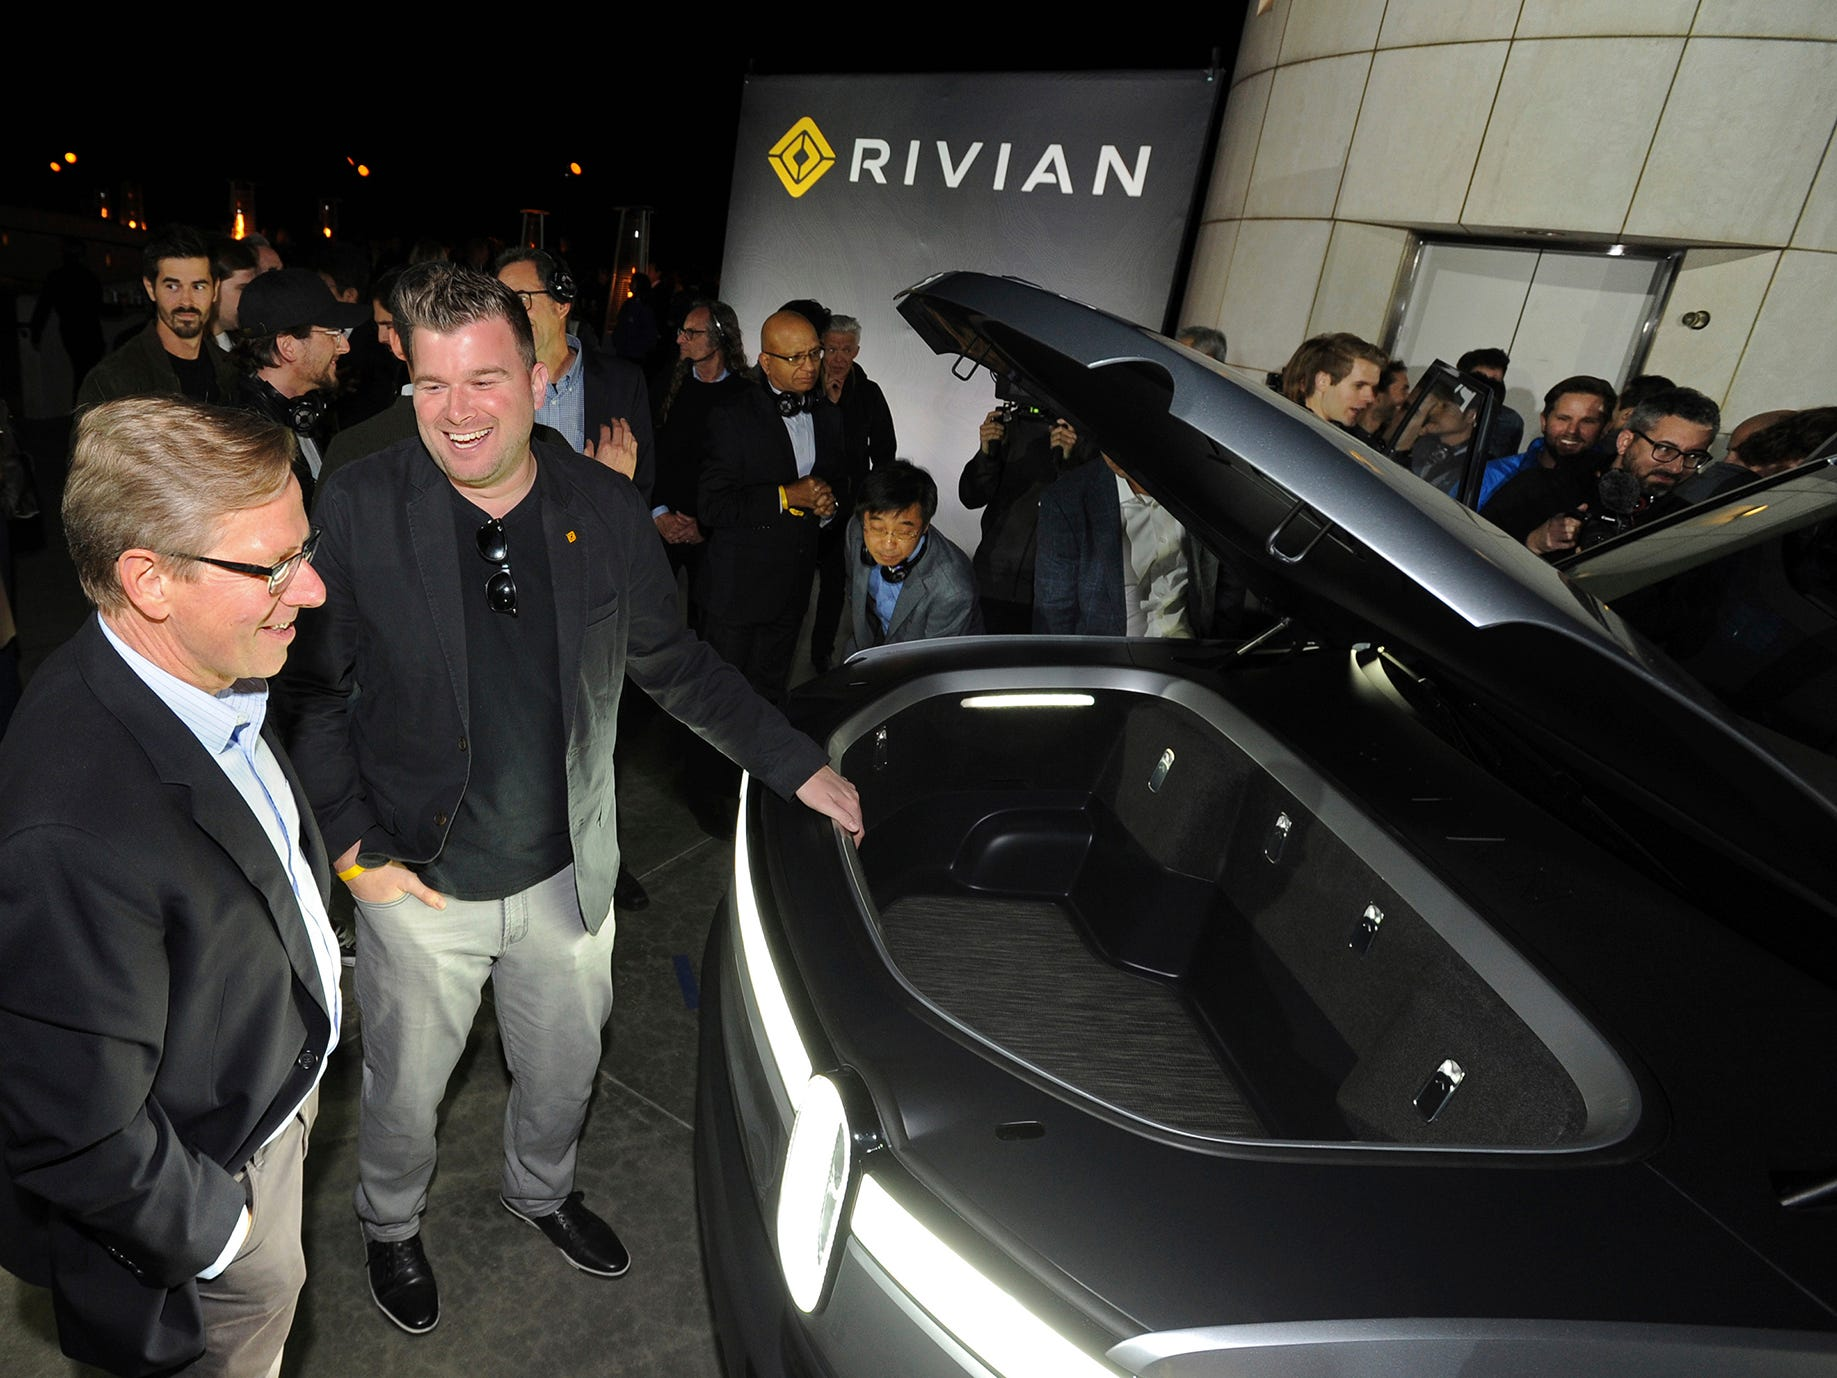 Rivian unveils the first-ever electric adventure vehicle before its official reveal at the LA Auto Show at the Griffith Observatory on Monday, Nov. 26, 2018 in Los Angeles.